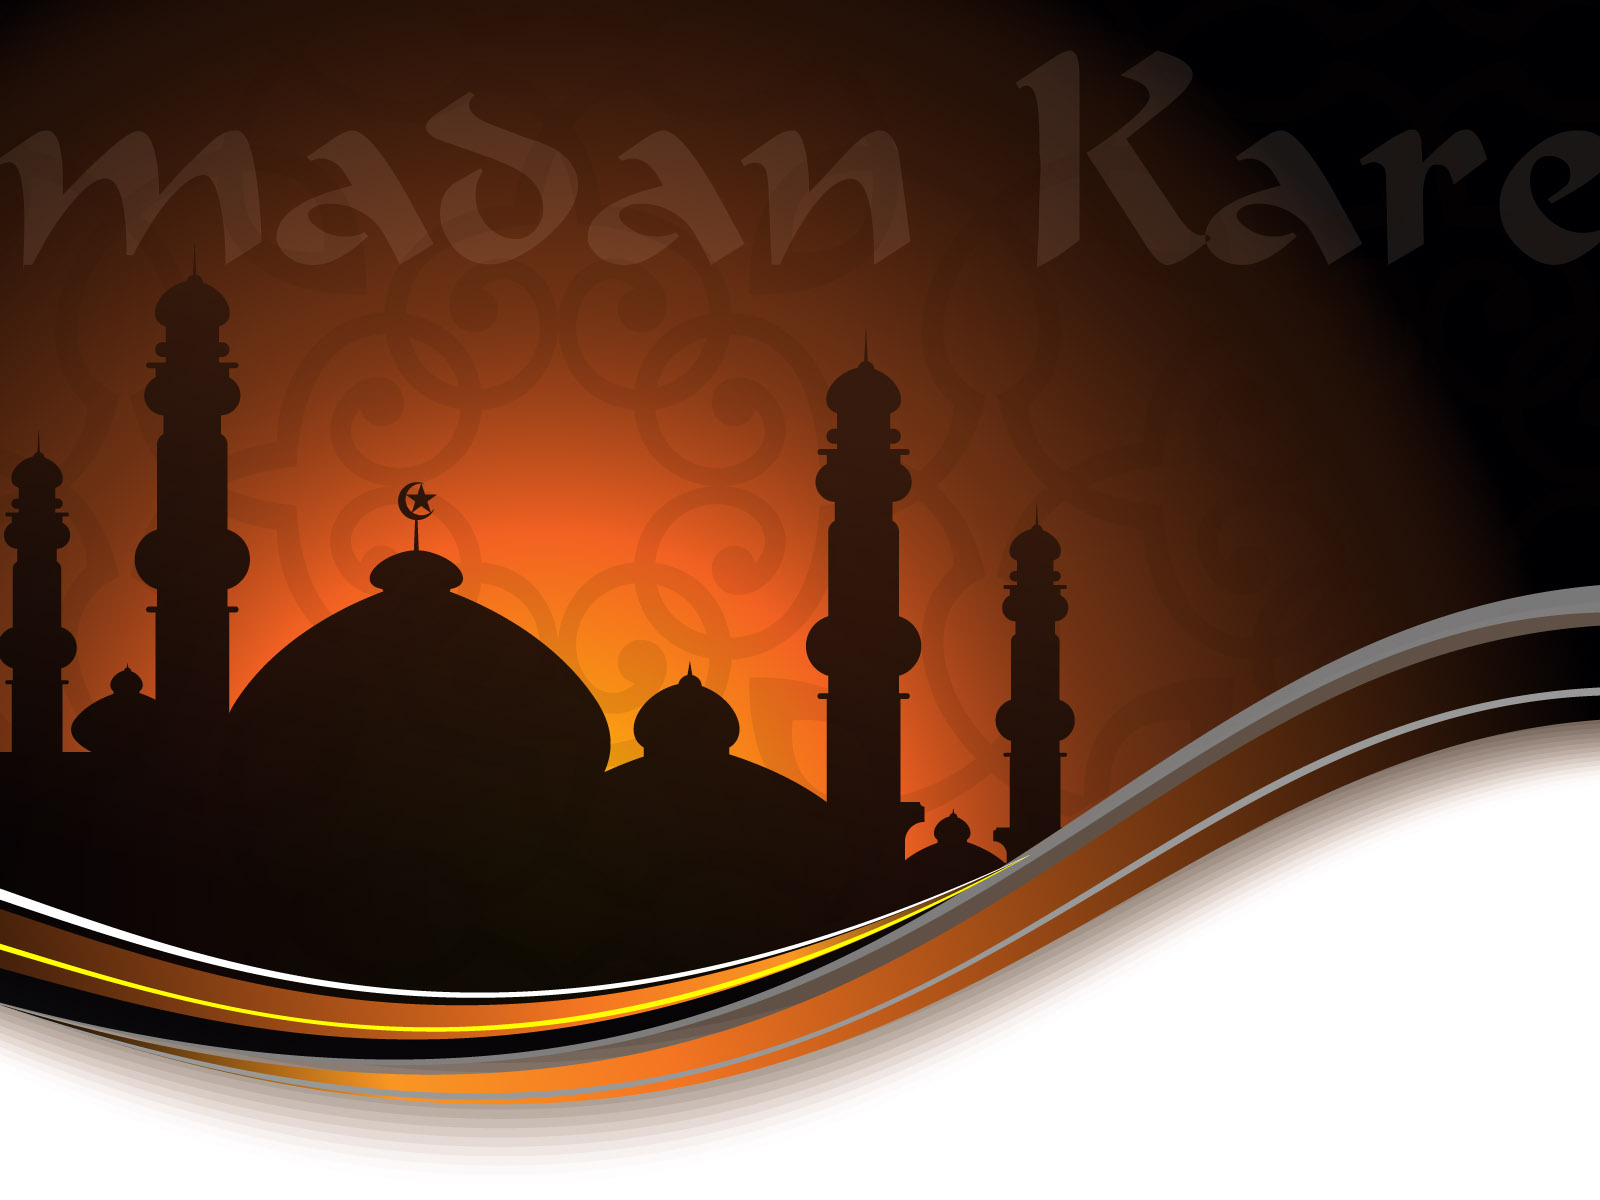 islamic ramadan kareem ppt backgrounds for muslims powerpoint file, Powerpoint templates